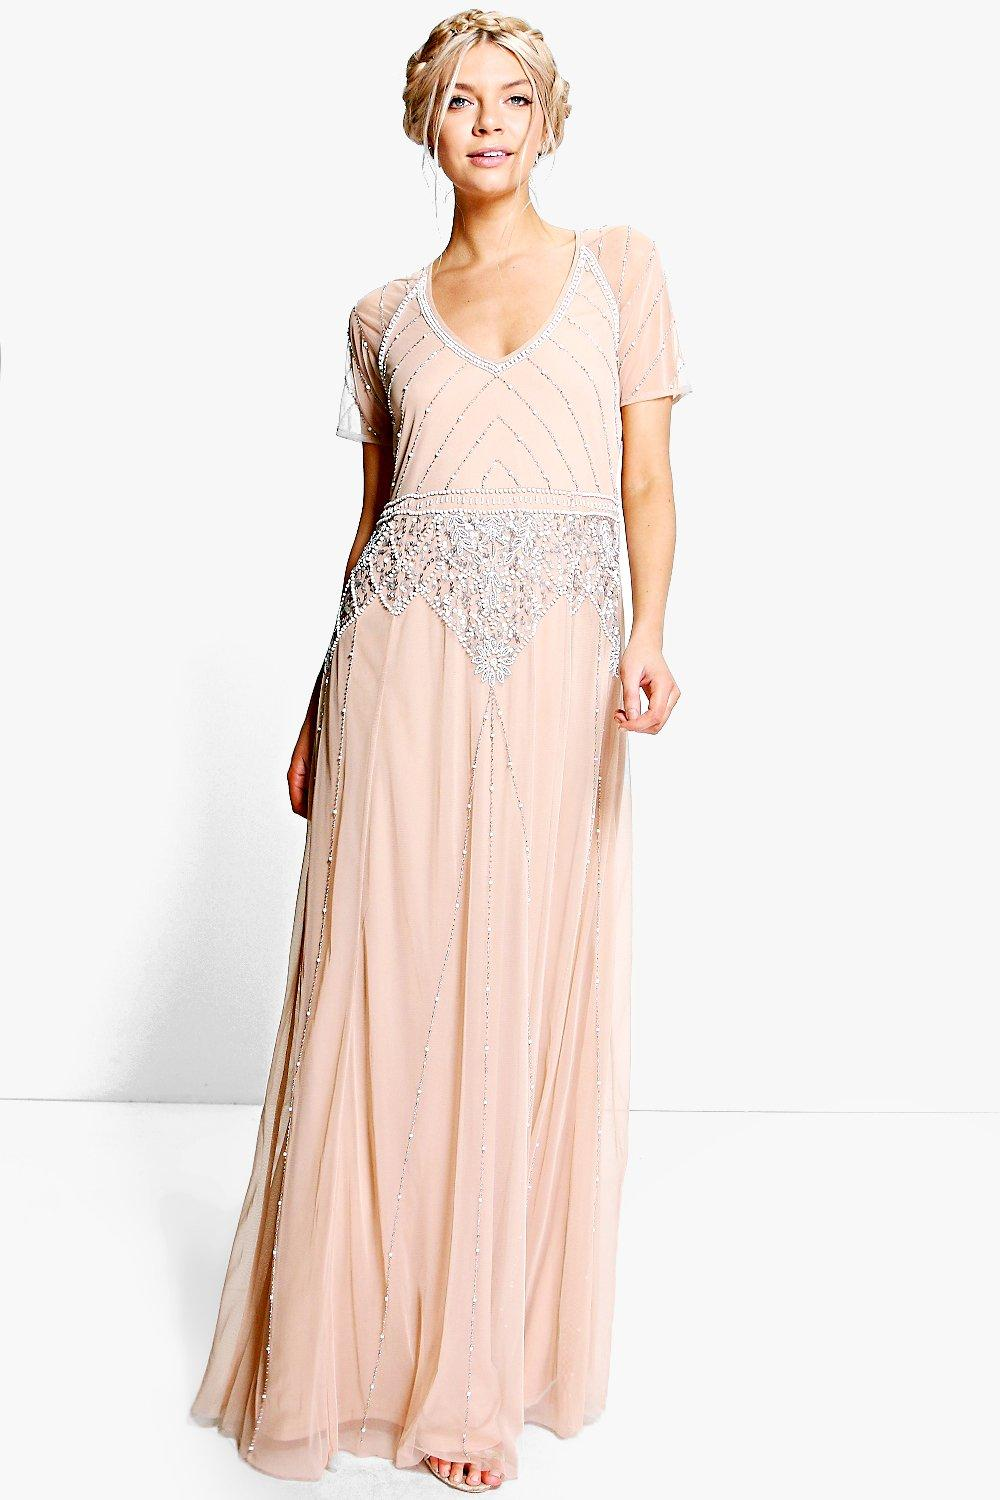 Vintage Evening Dresses and Formal Evening Gowns Boutique Beaded Cap Sleeve Maxi Dress  AT vintagedancer.com